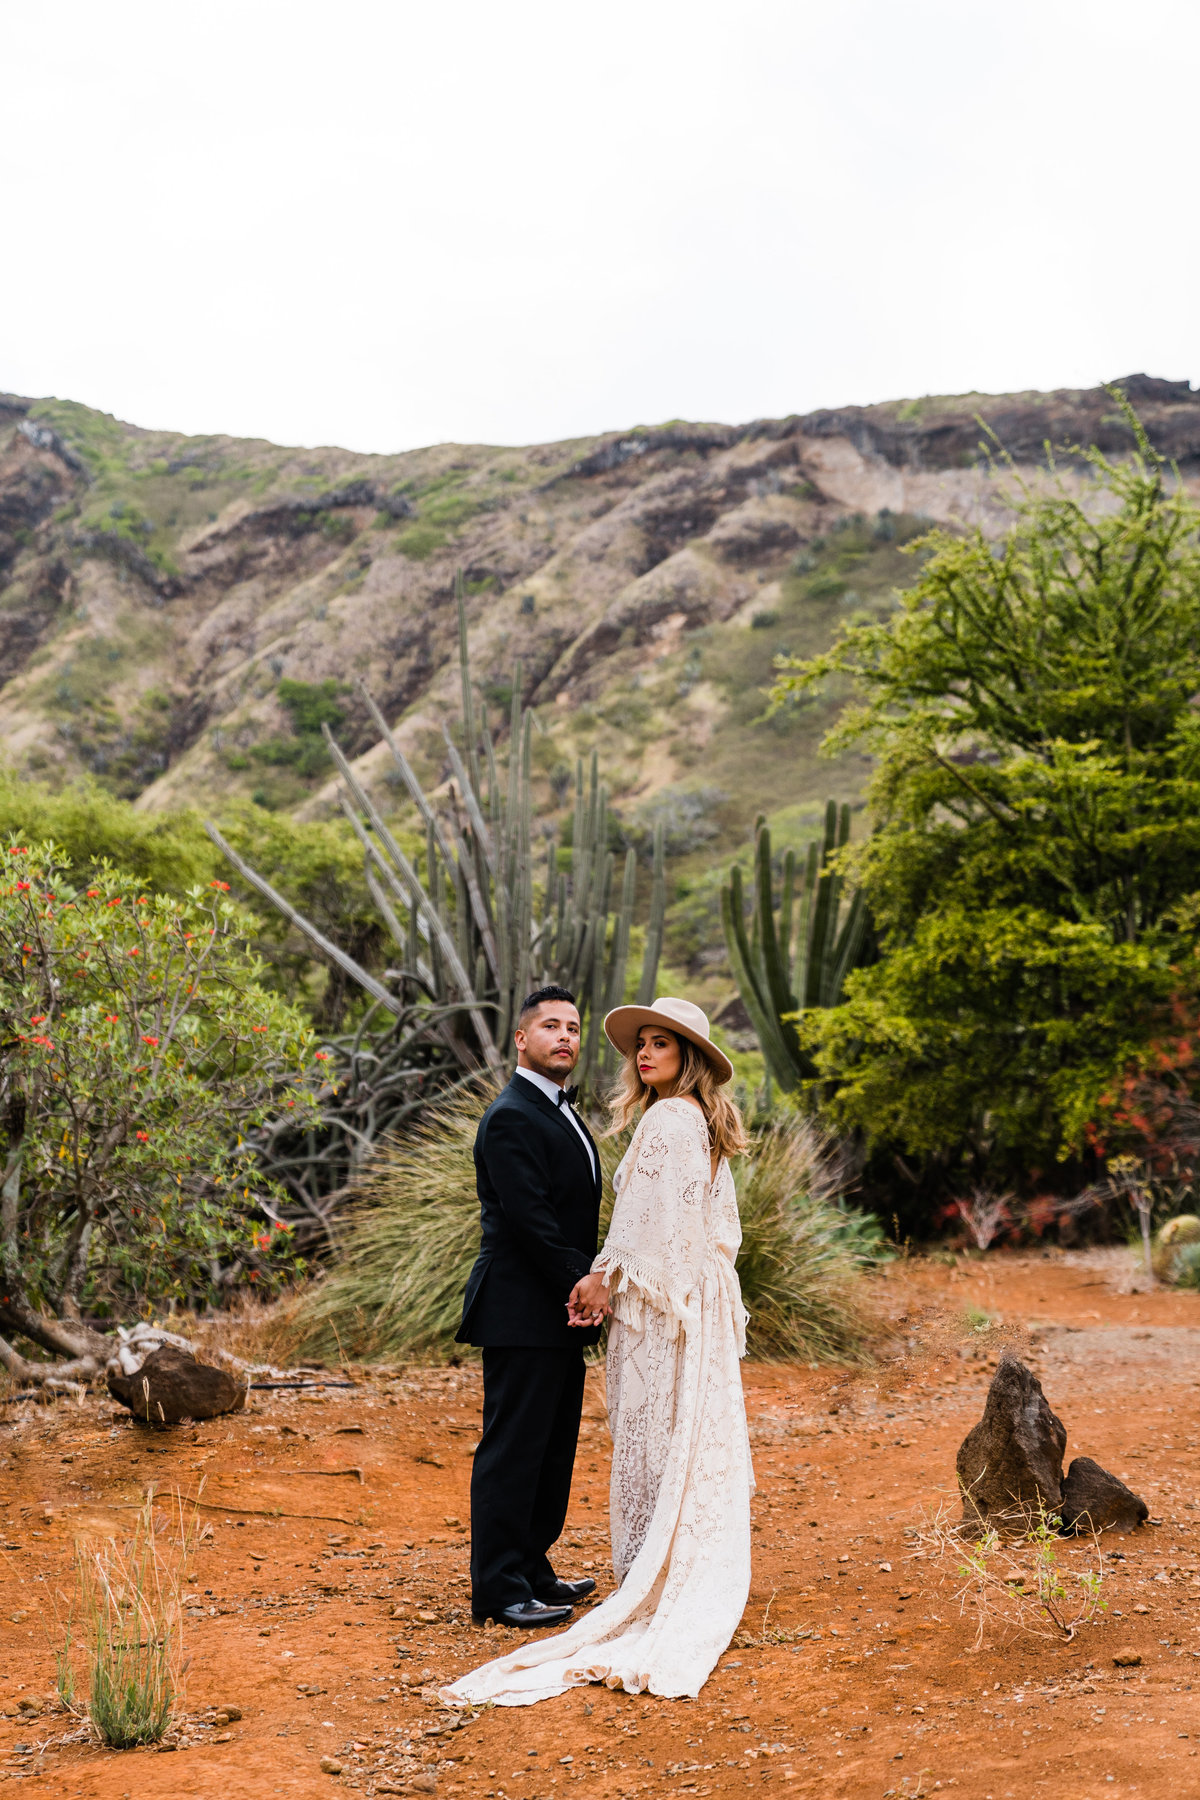 cactus-botanical-garden-hawaii-elopement-sydney-and-ryan-photography-18